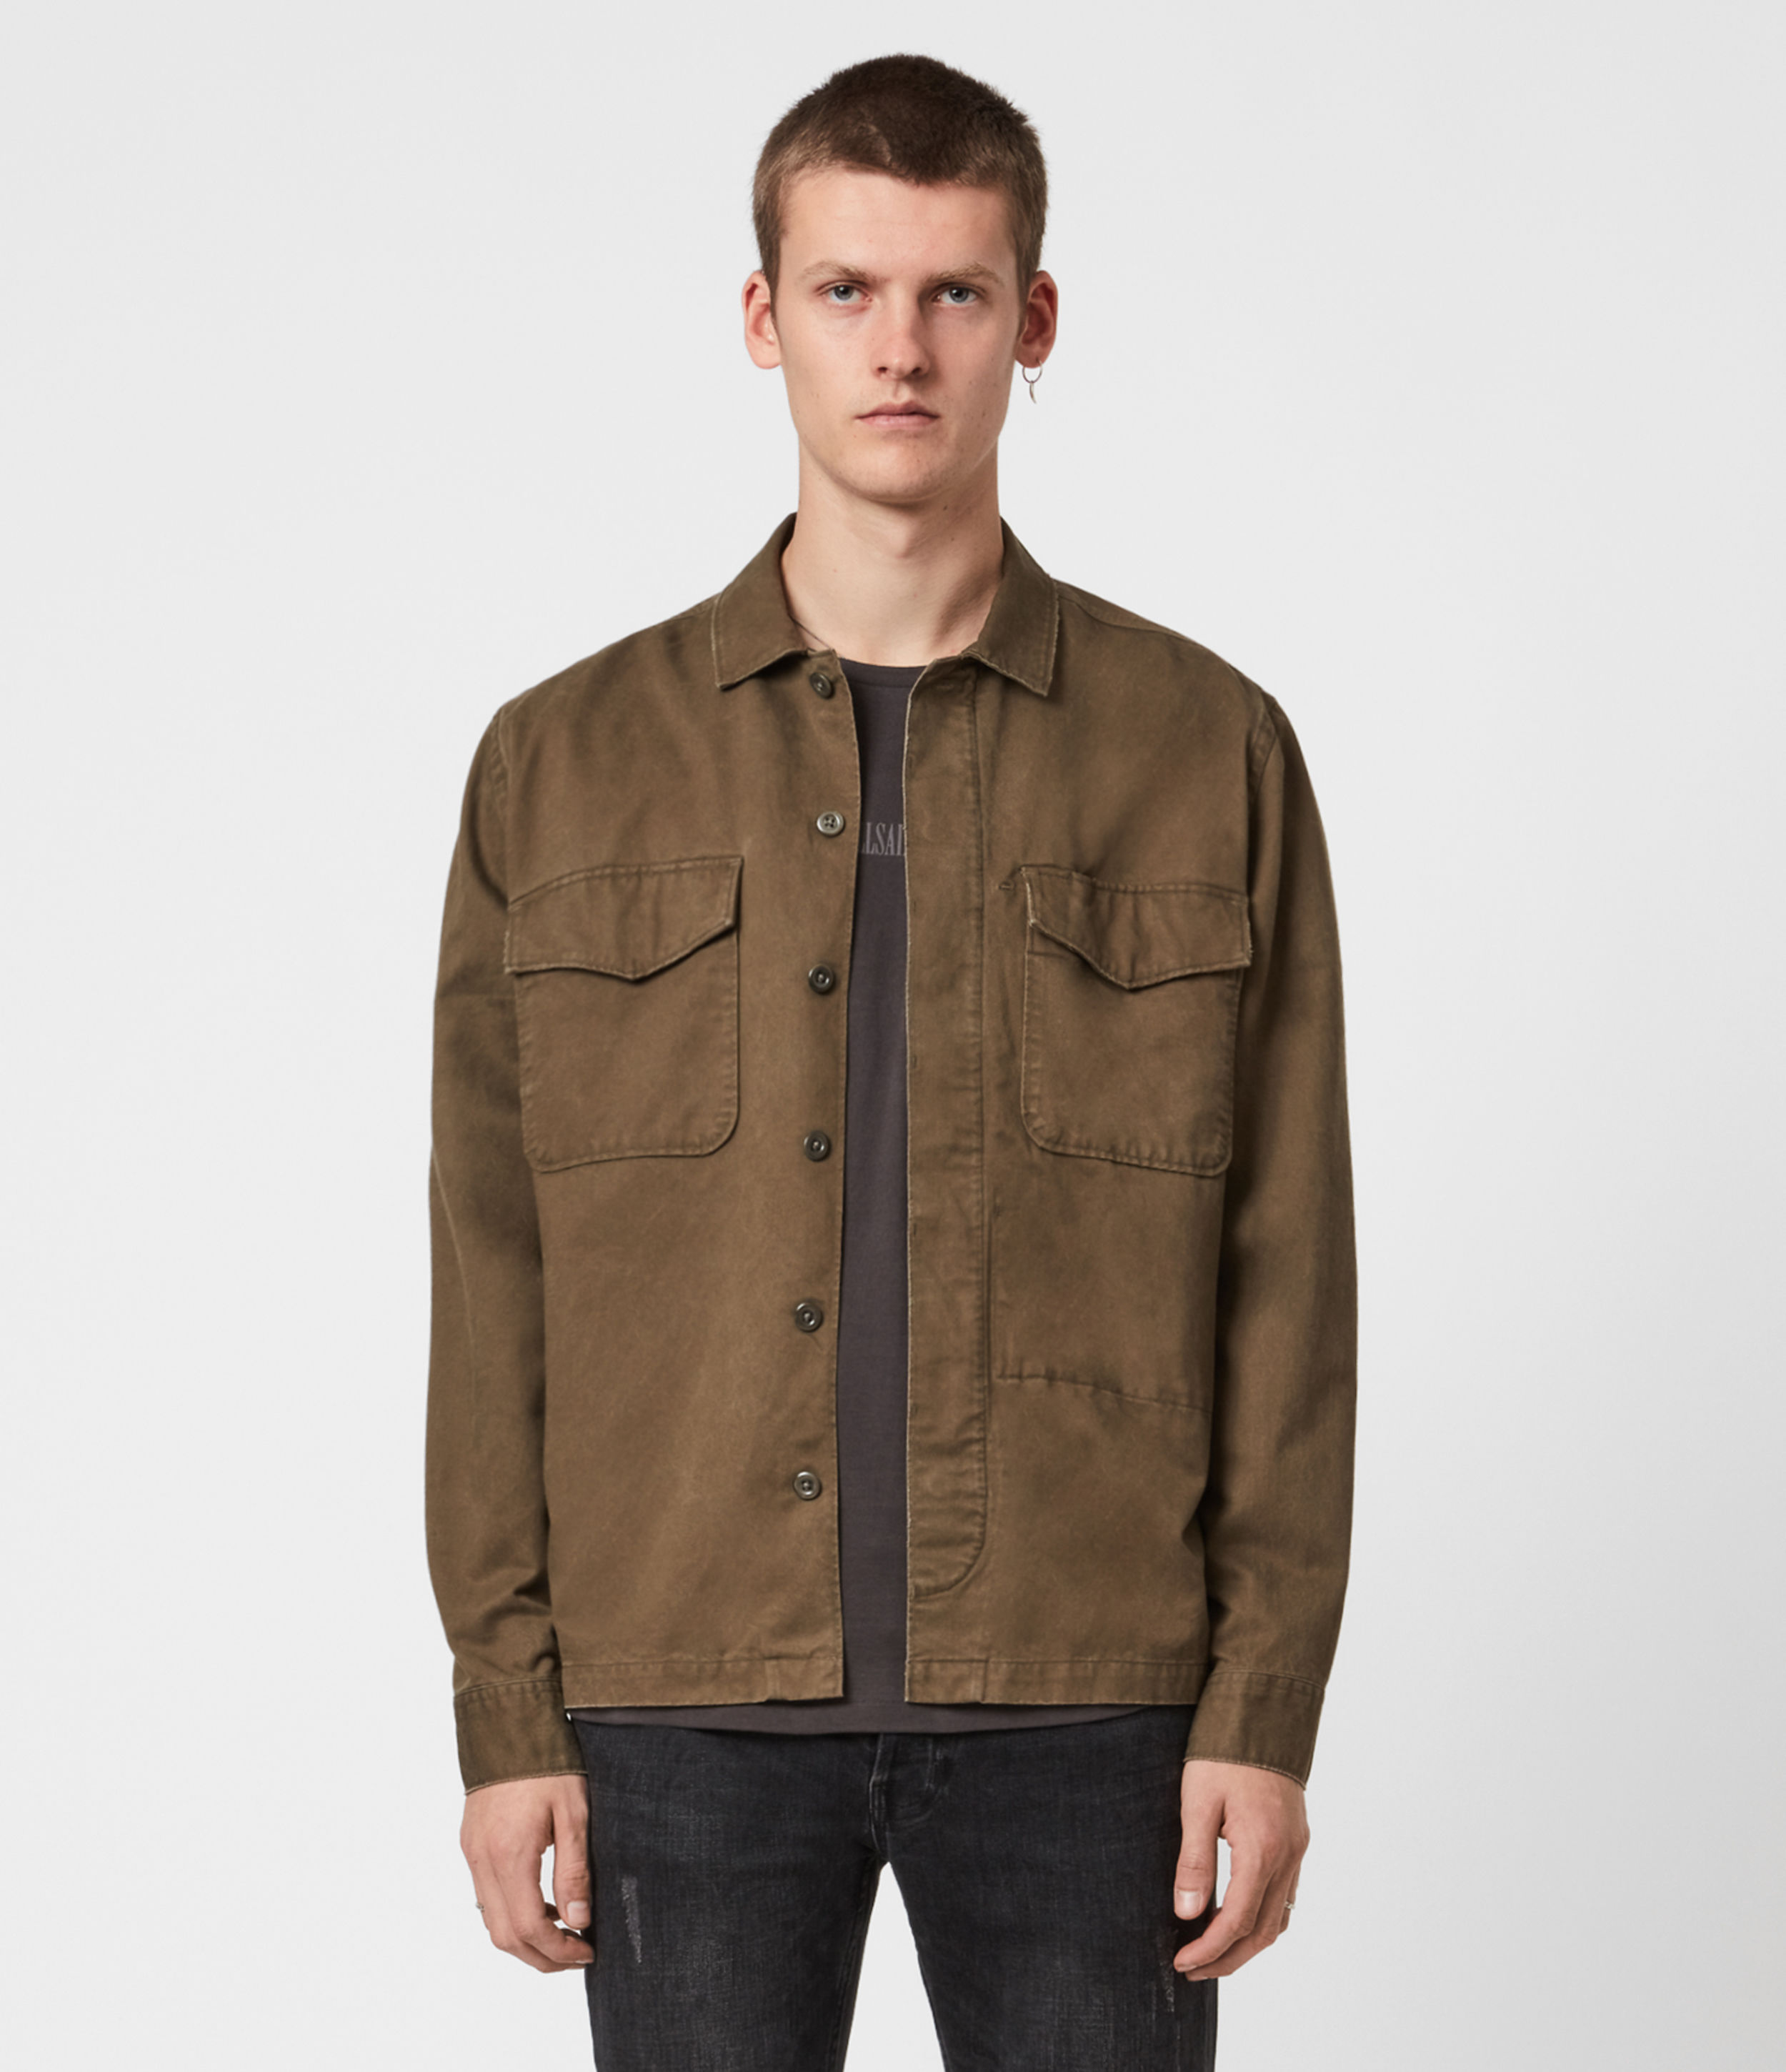 AllSaints Warrant Shirt